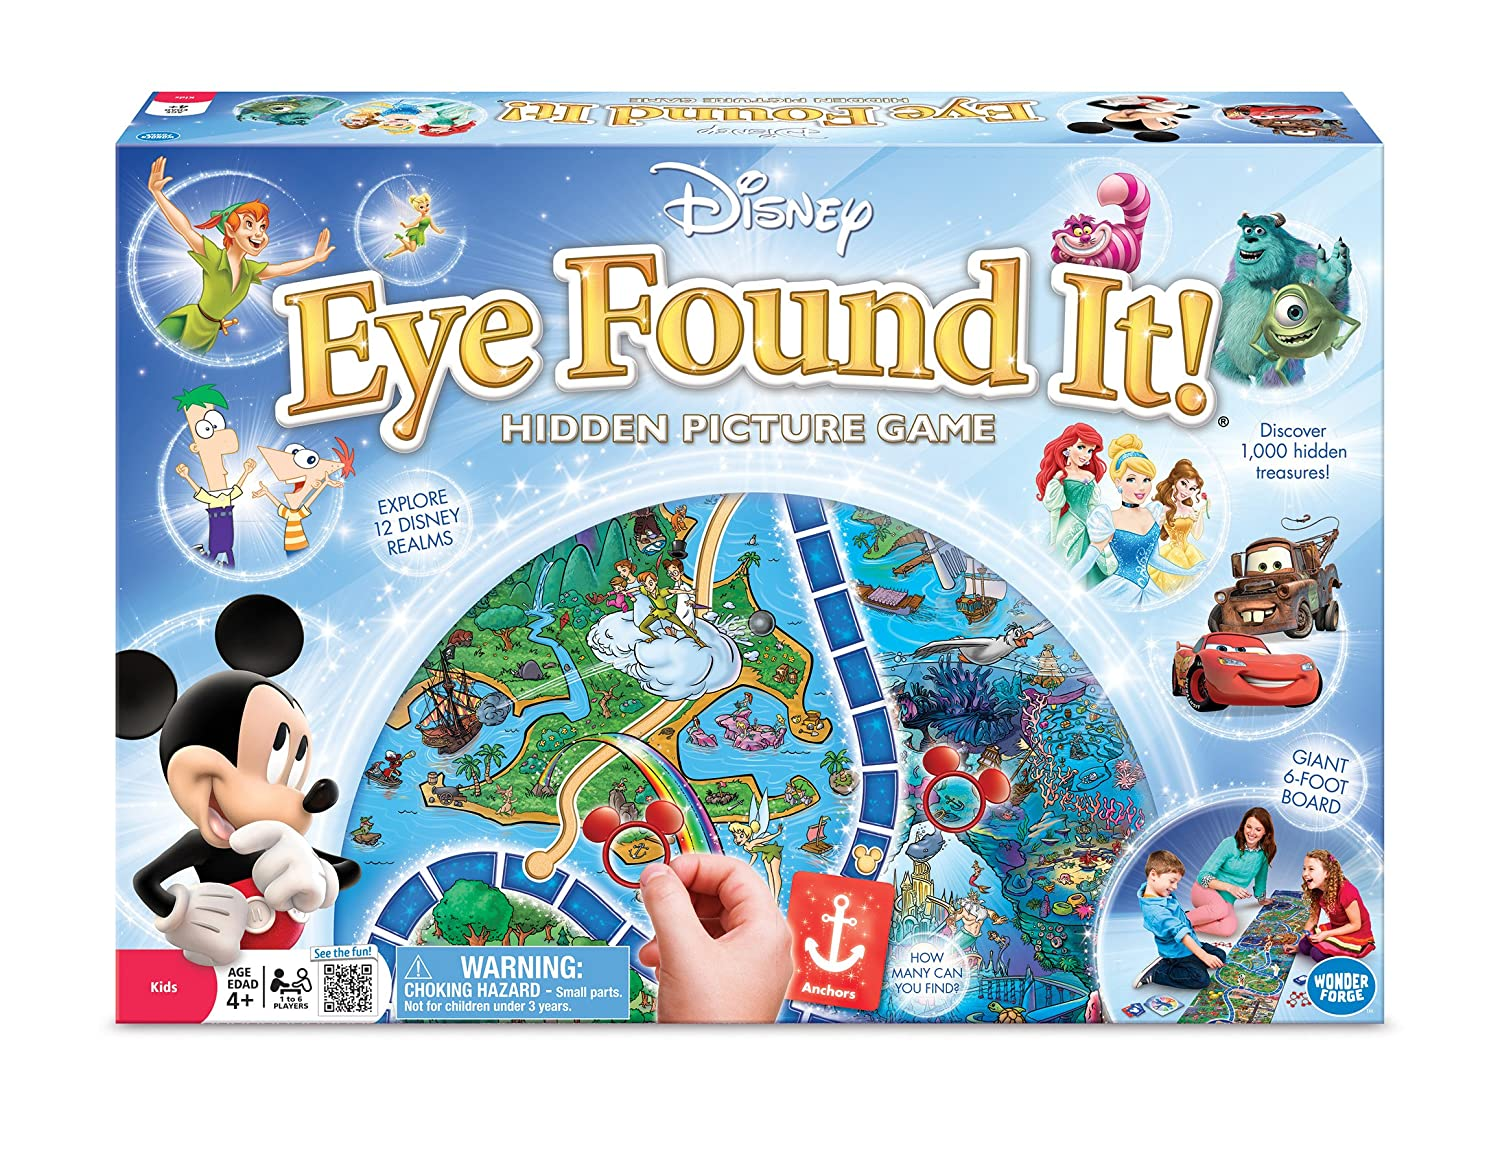 world of disney eye found it board game - Hidden Pictures For 3 Year Olds